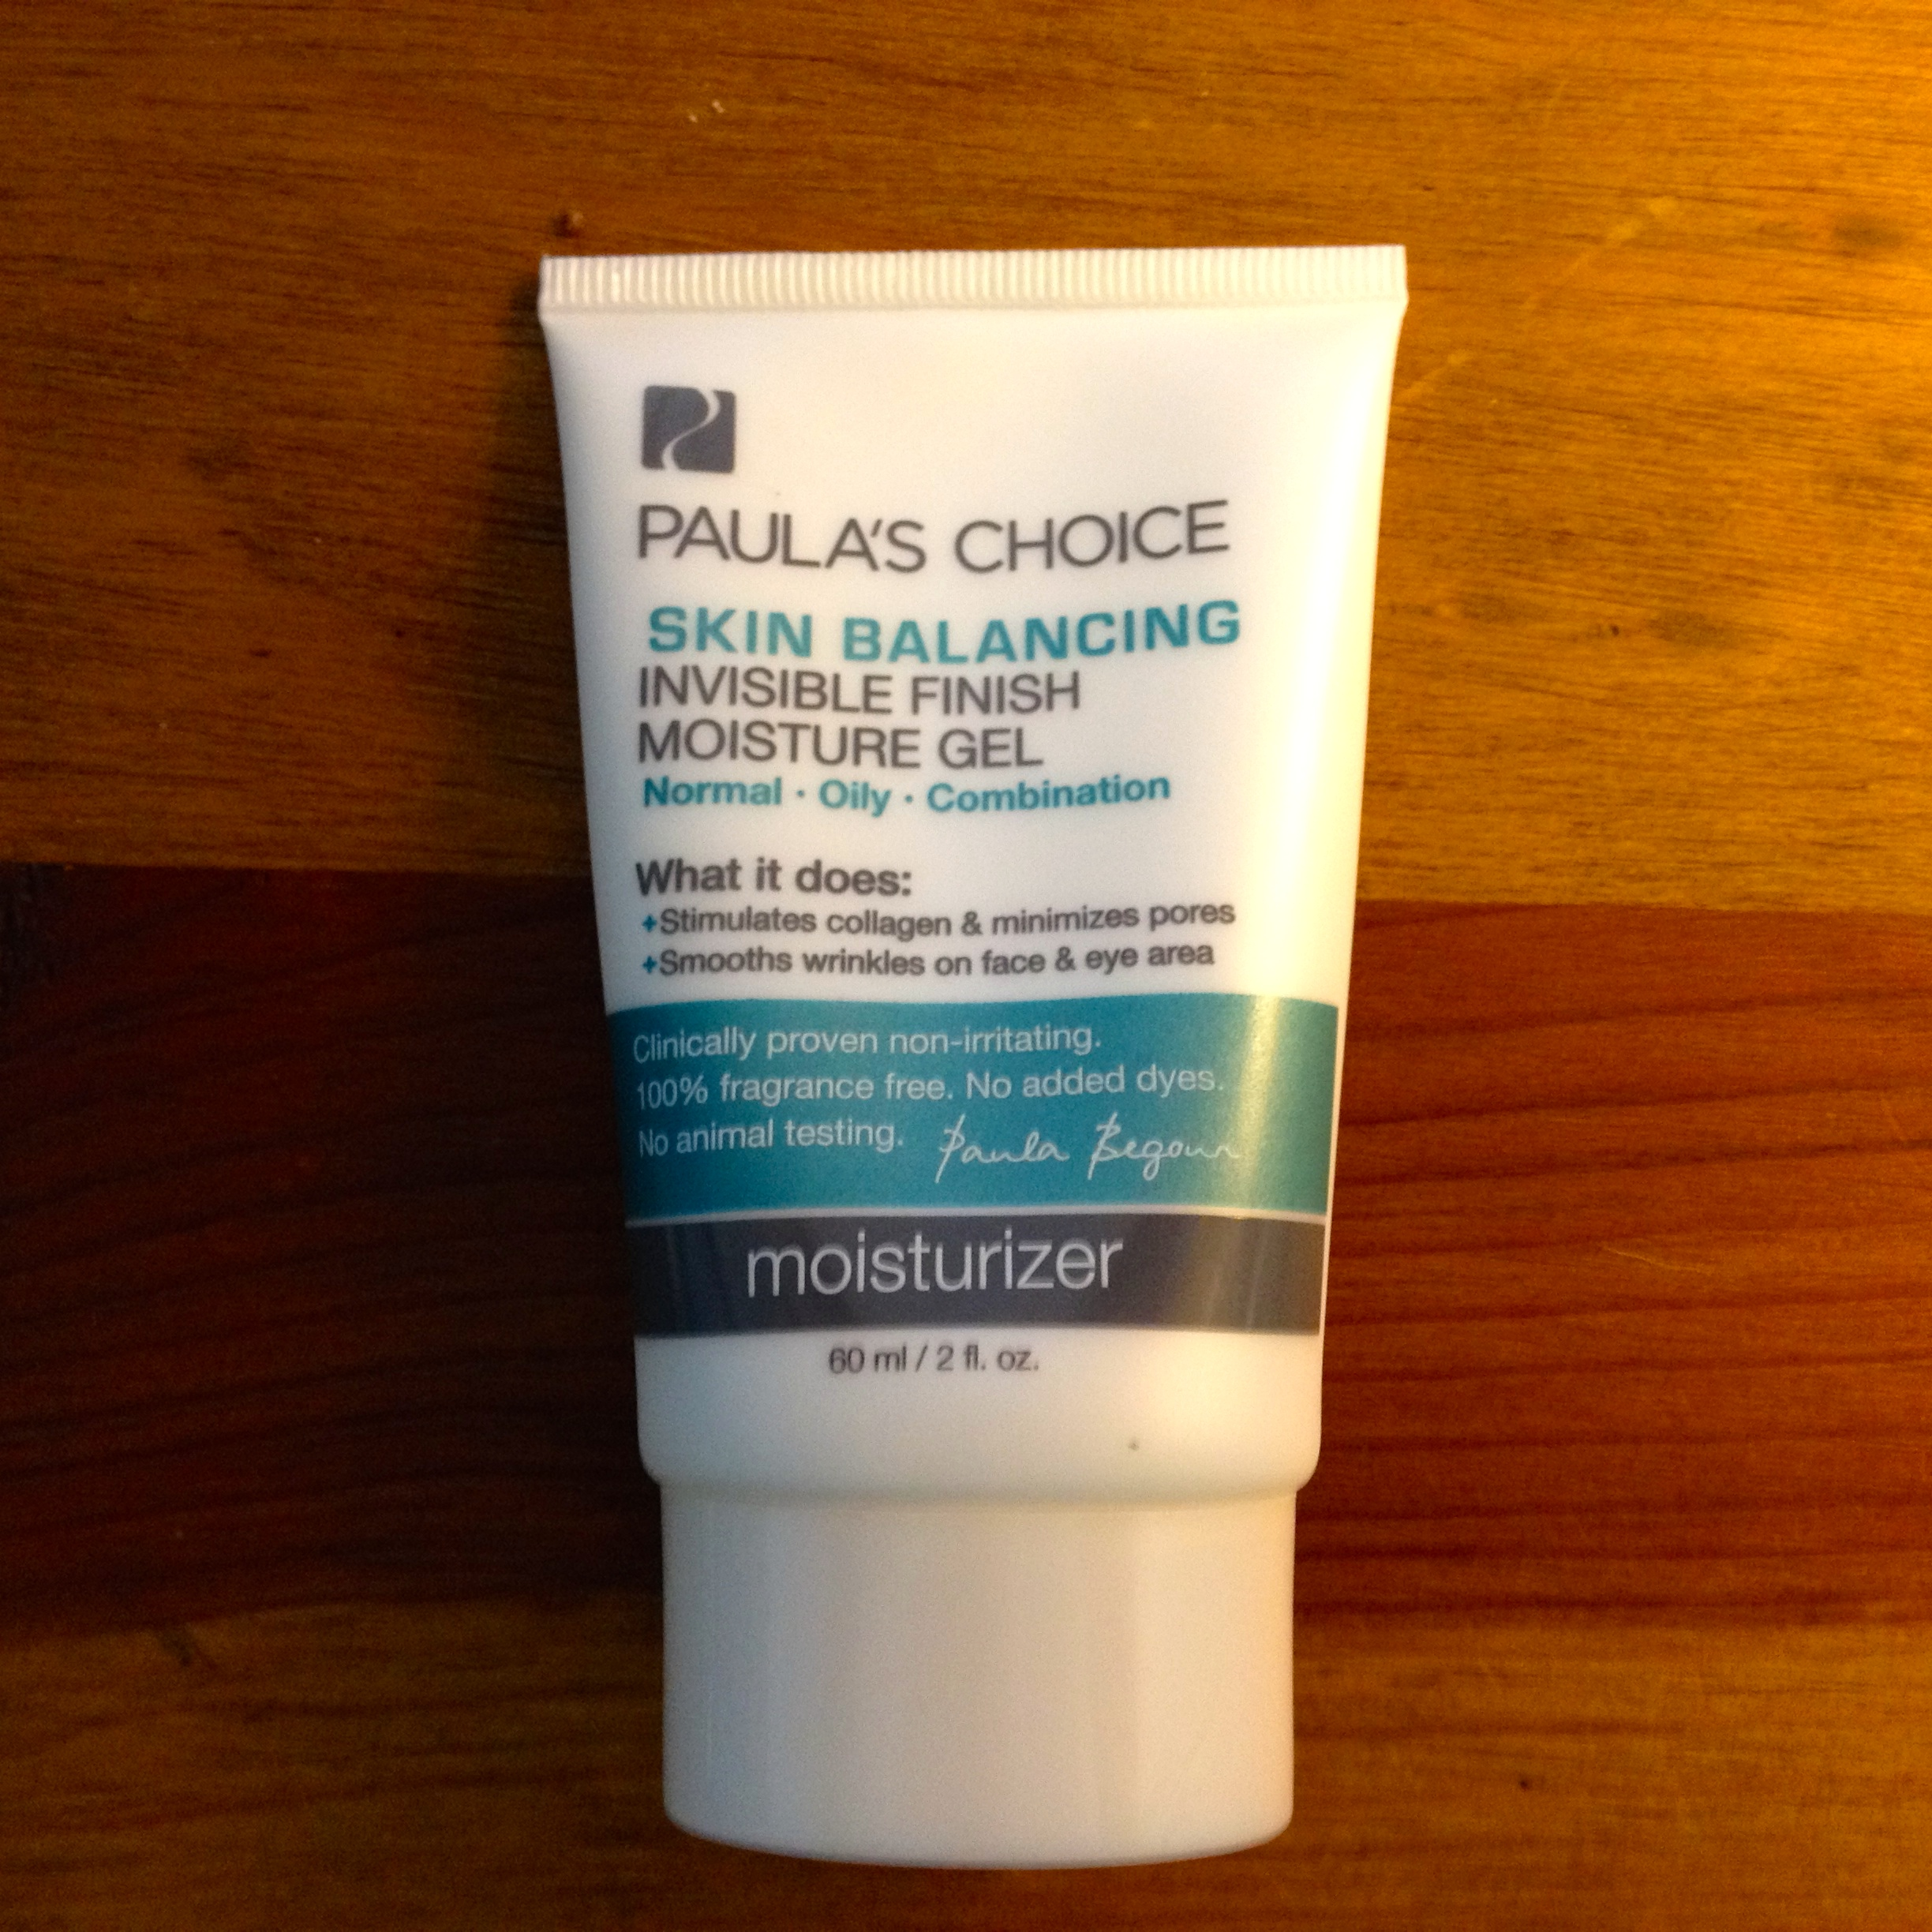 Paula's Choice Skin Balancing Invisible Finish Moisture Gel | $26.00